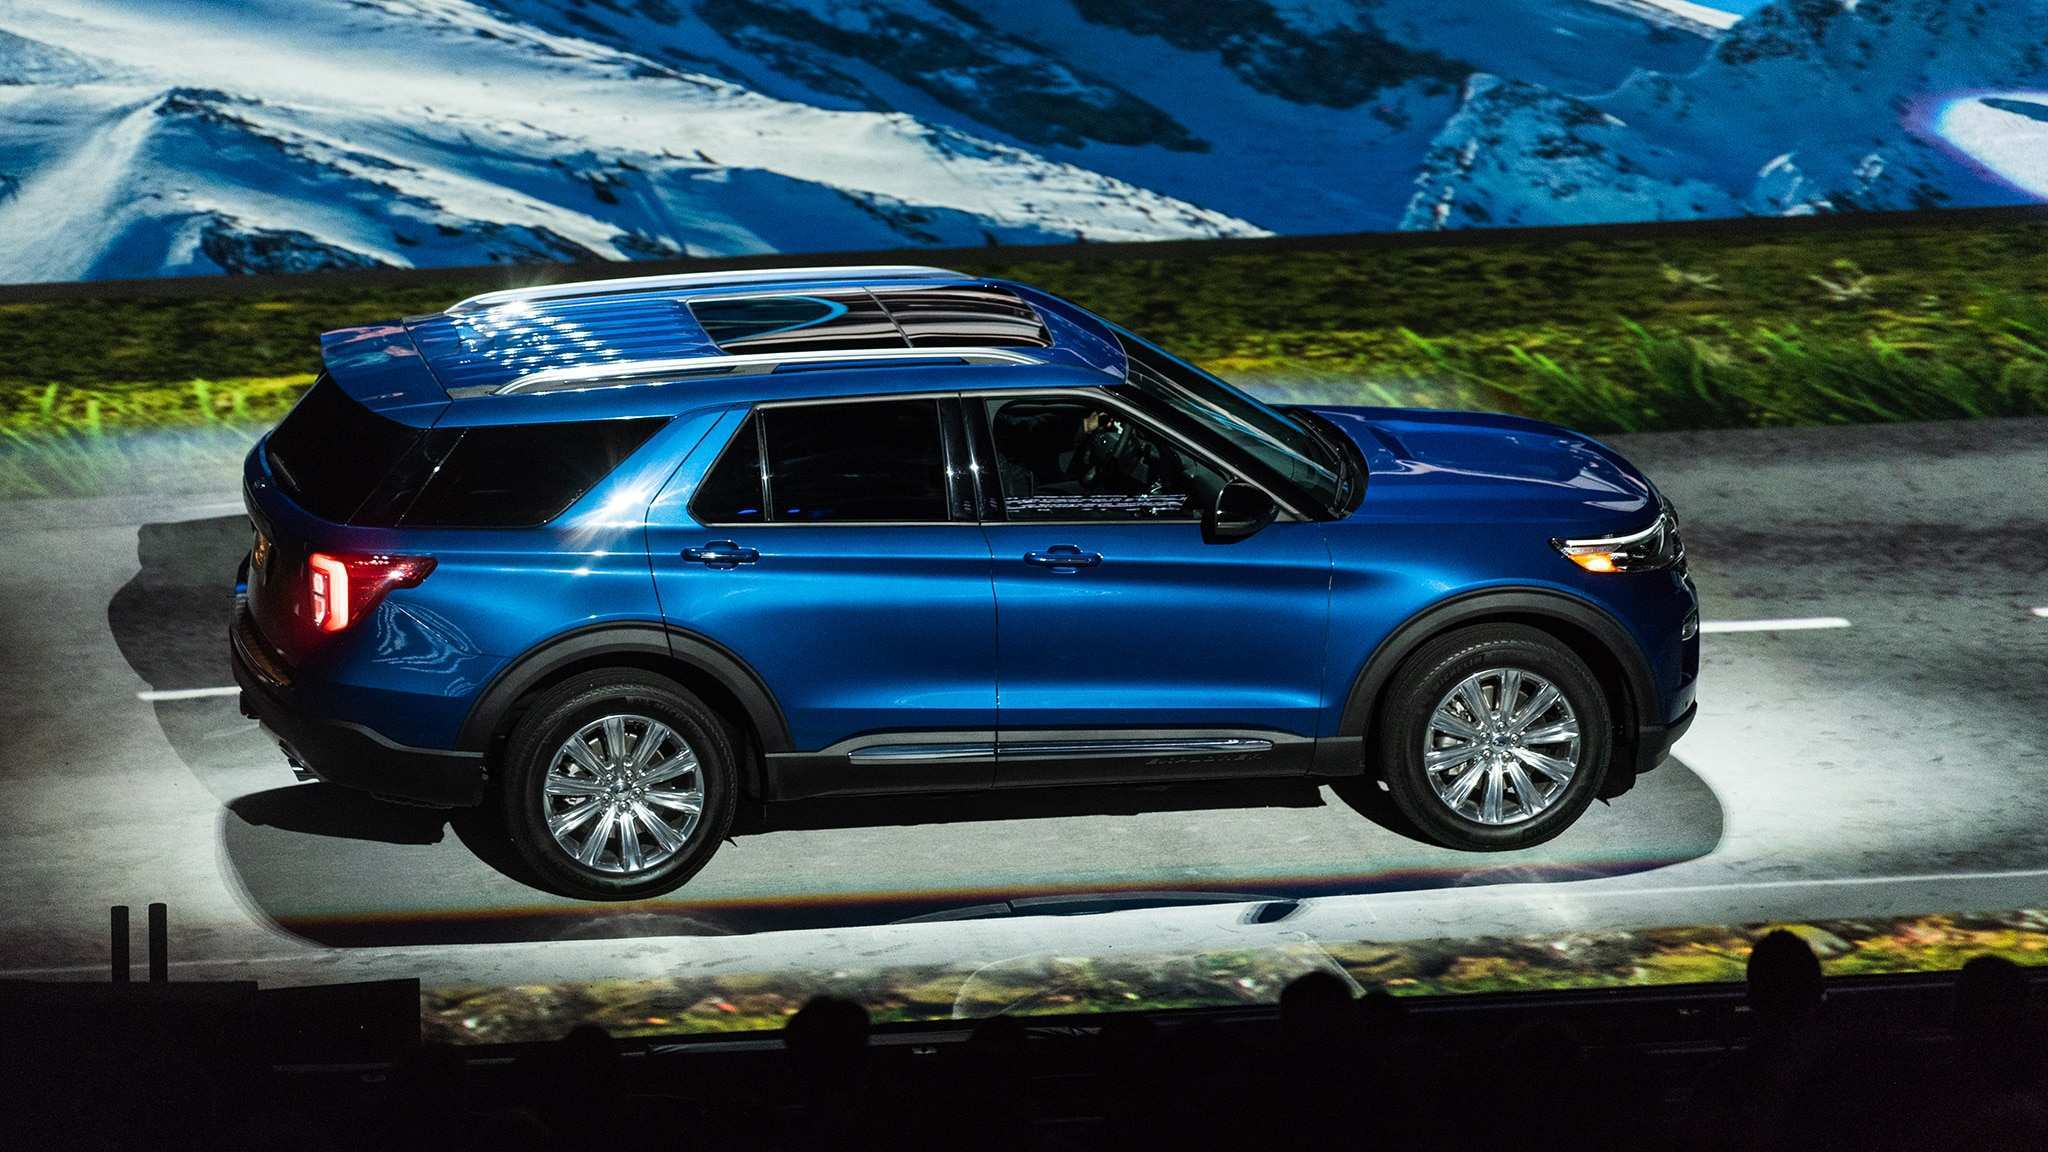 29 All New 2020 Ford Explorer Limited Release Date And Concept